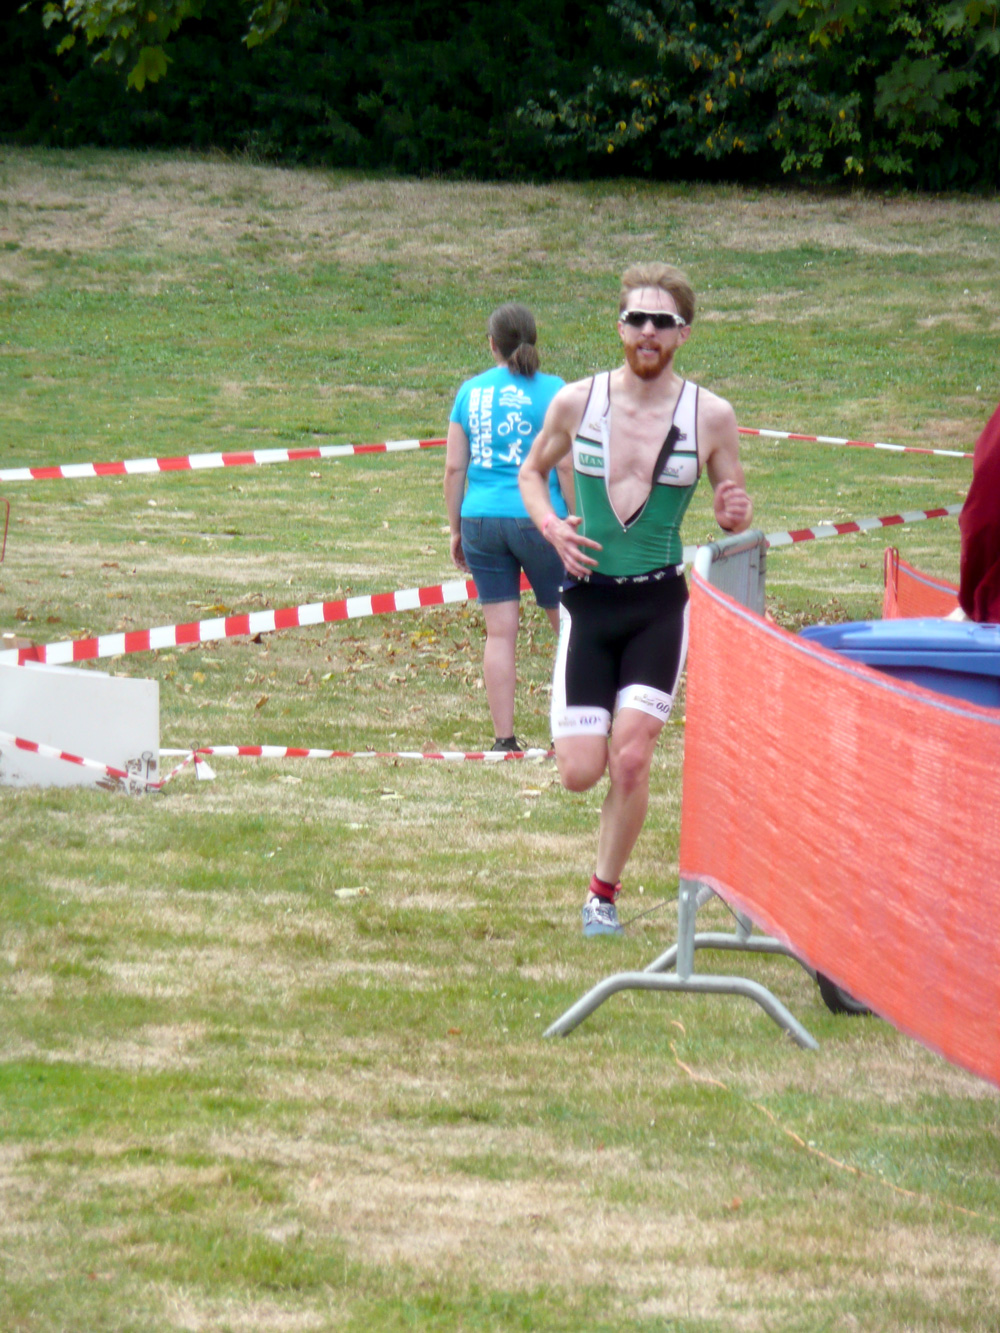 Triathlon-Willich-02.jpg